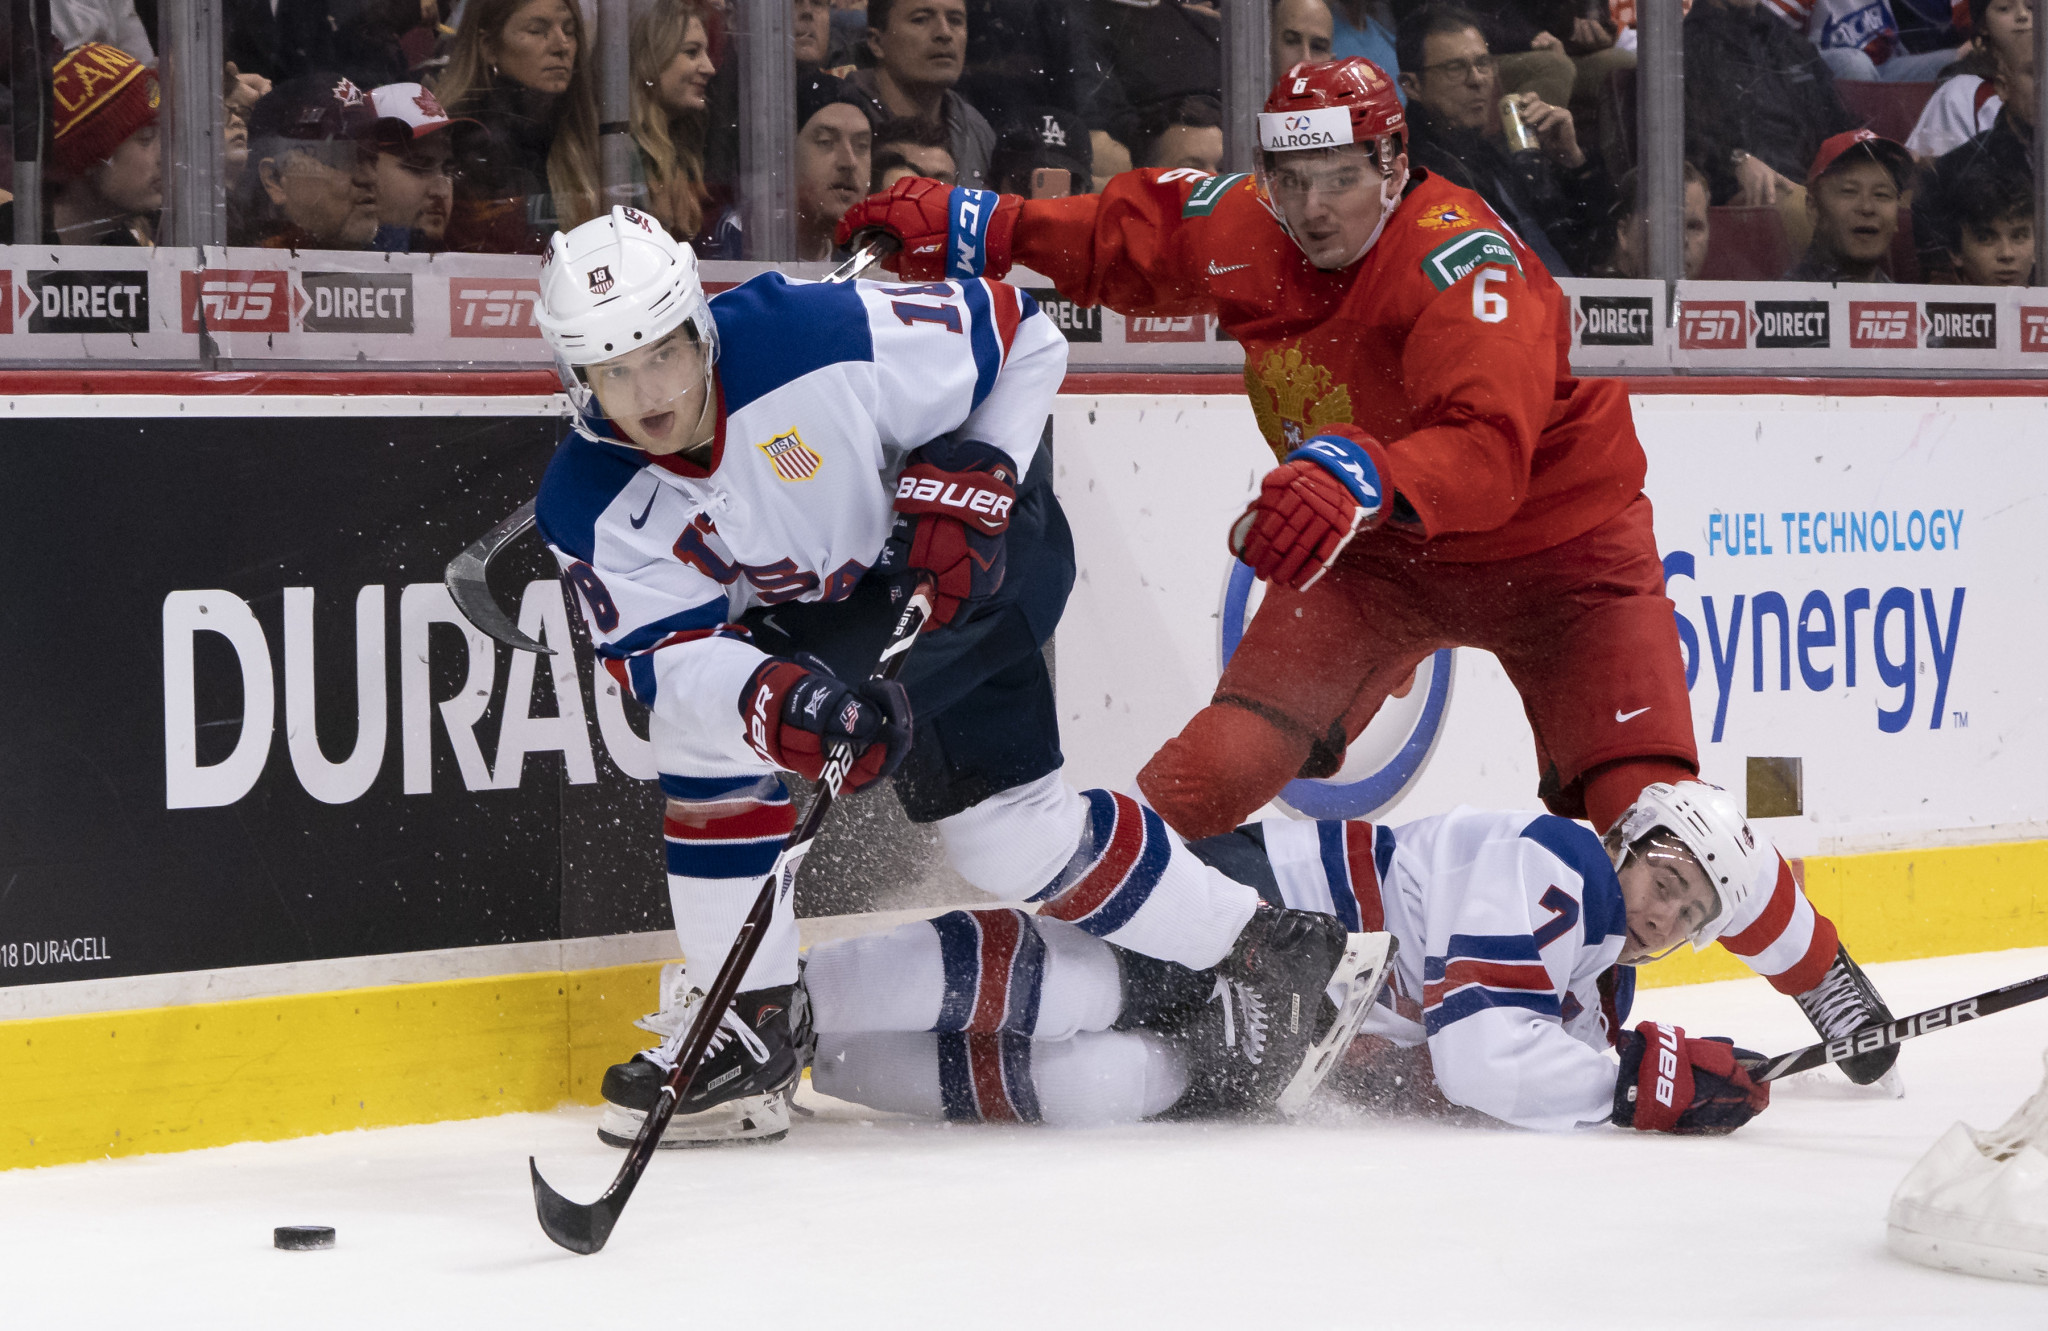 Oliver Wahlstrom of the United States in action during last year's World Junior Championship ©Getty Images